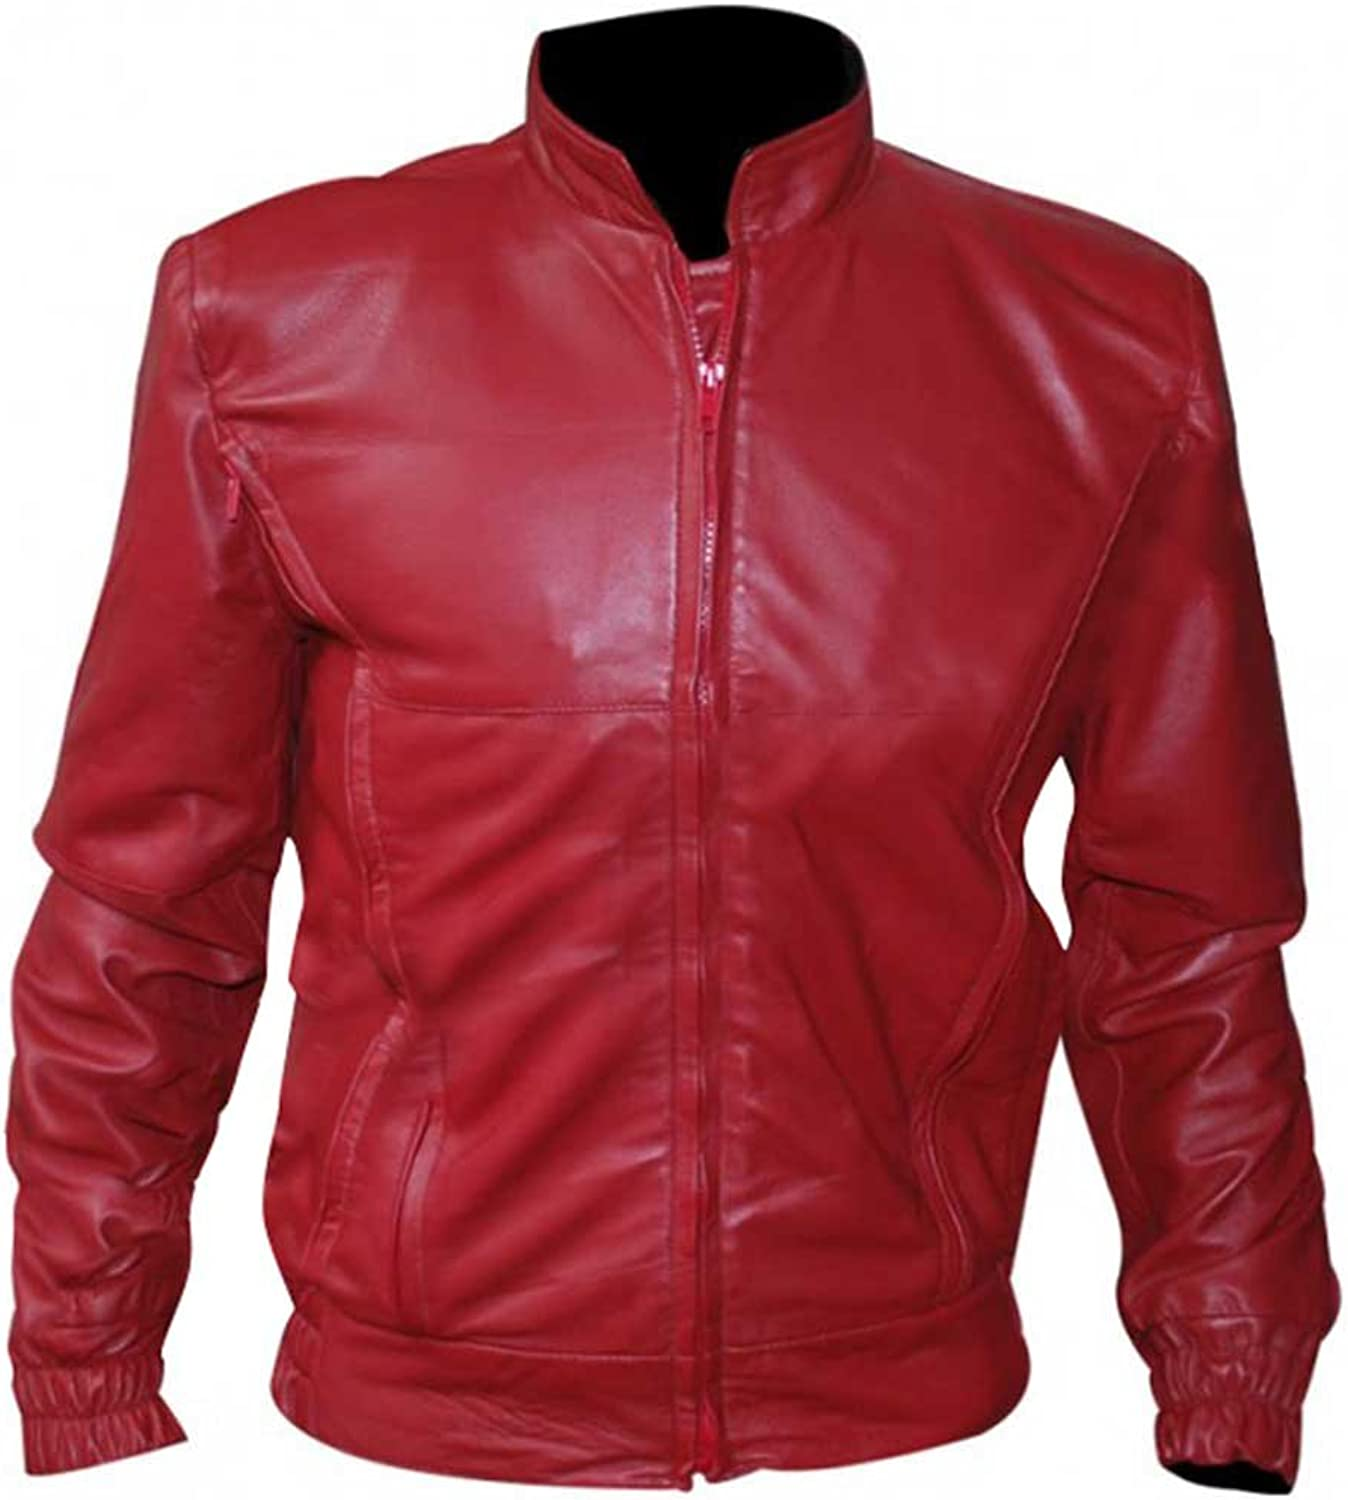 The Place Beyond The Pines Ryan Gosling Luke Glanton Motorcycle Faux Leather Jacket